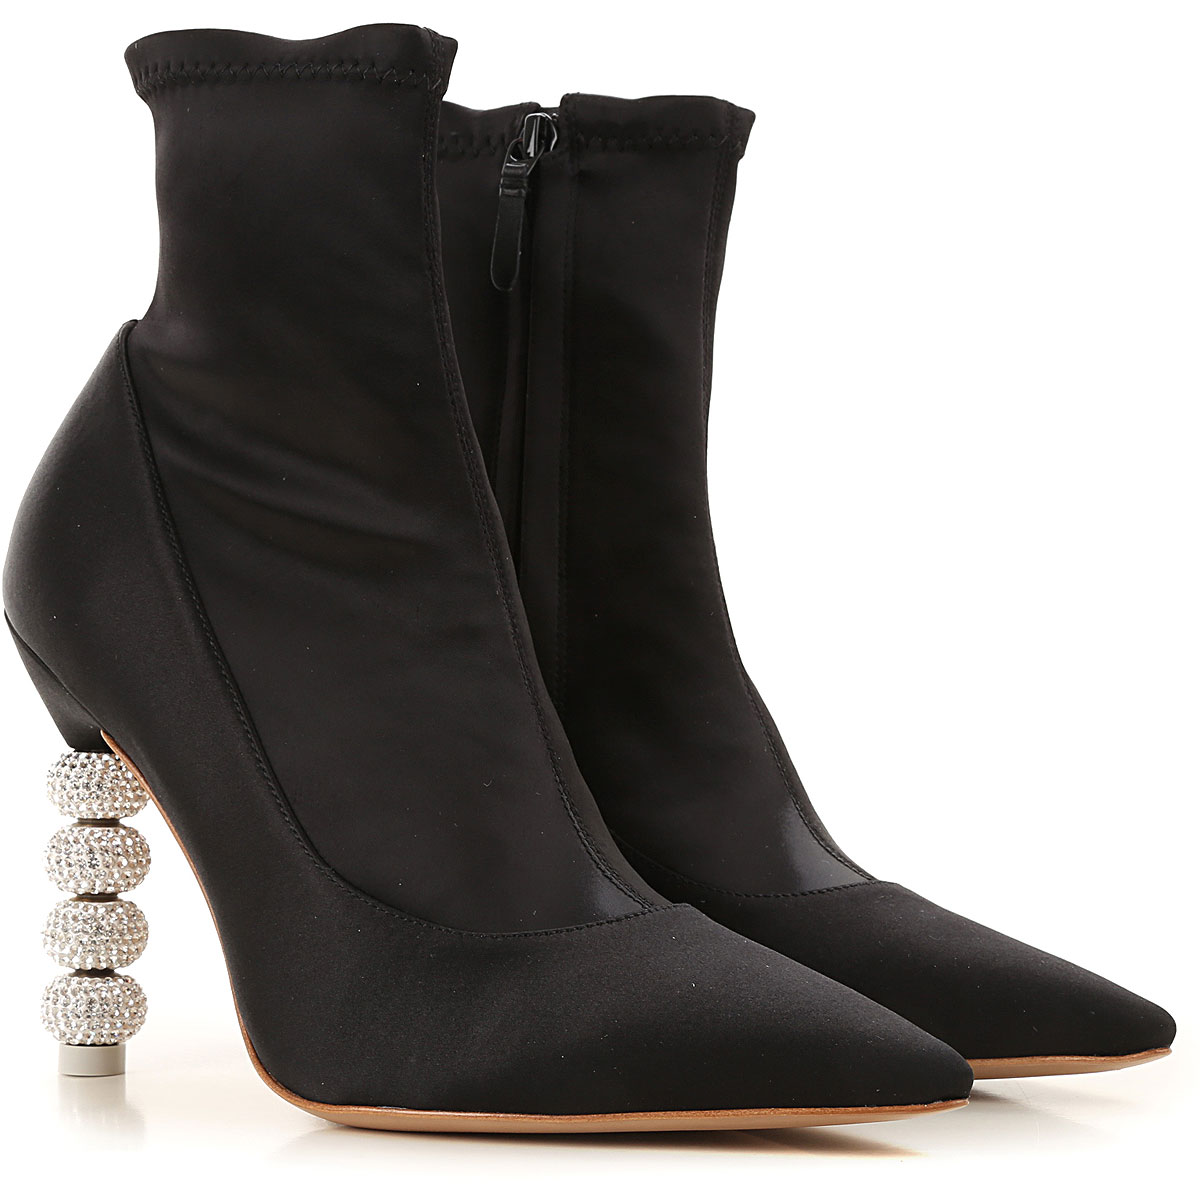 Sophia Webster Boots for Women, Booties On Sale in Outlet, Black, satin, 2019, 10 8 8.5